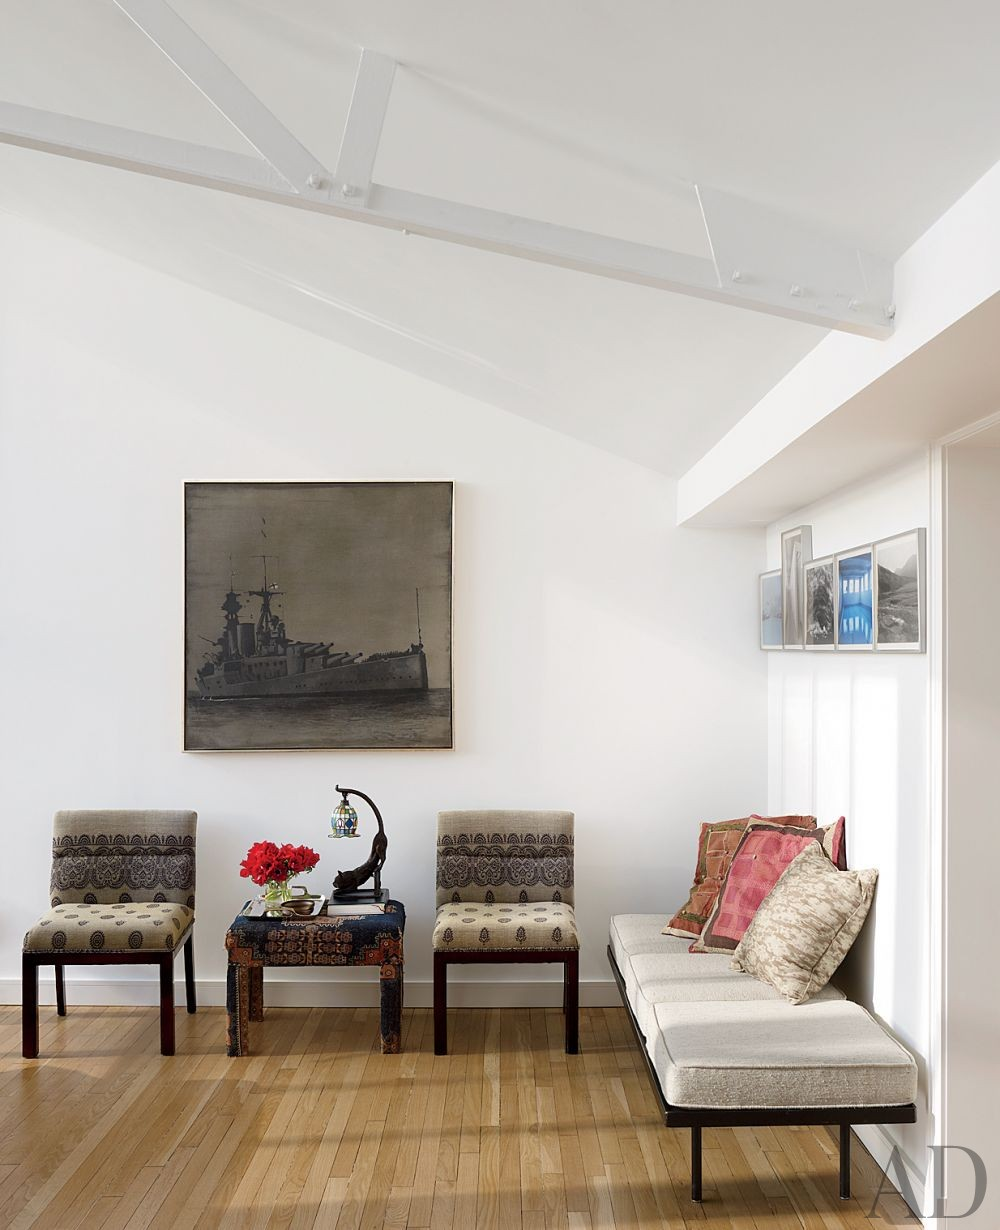 Contemporary Living Room by Milly de Cabrol Ltd. and Risteárd Keating in New York, New York